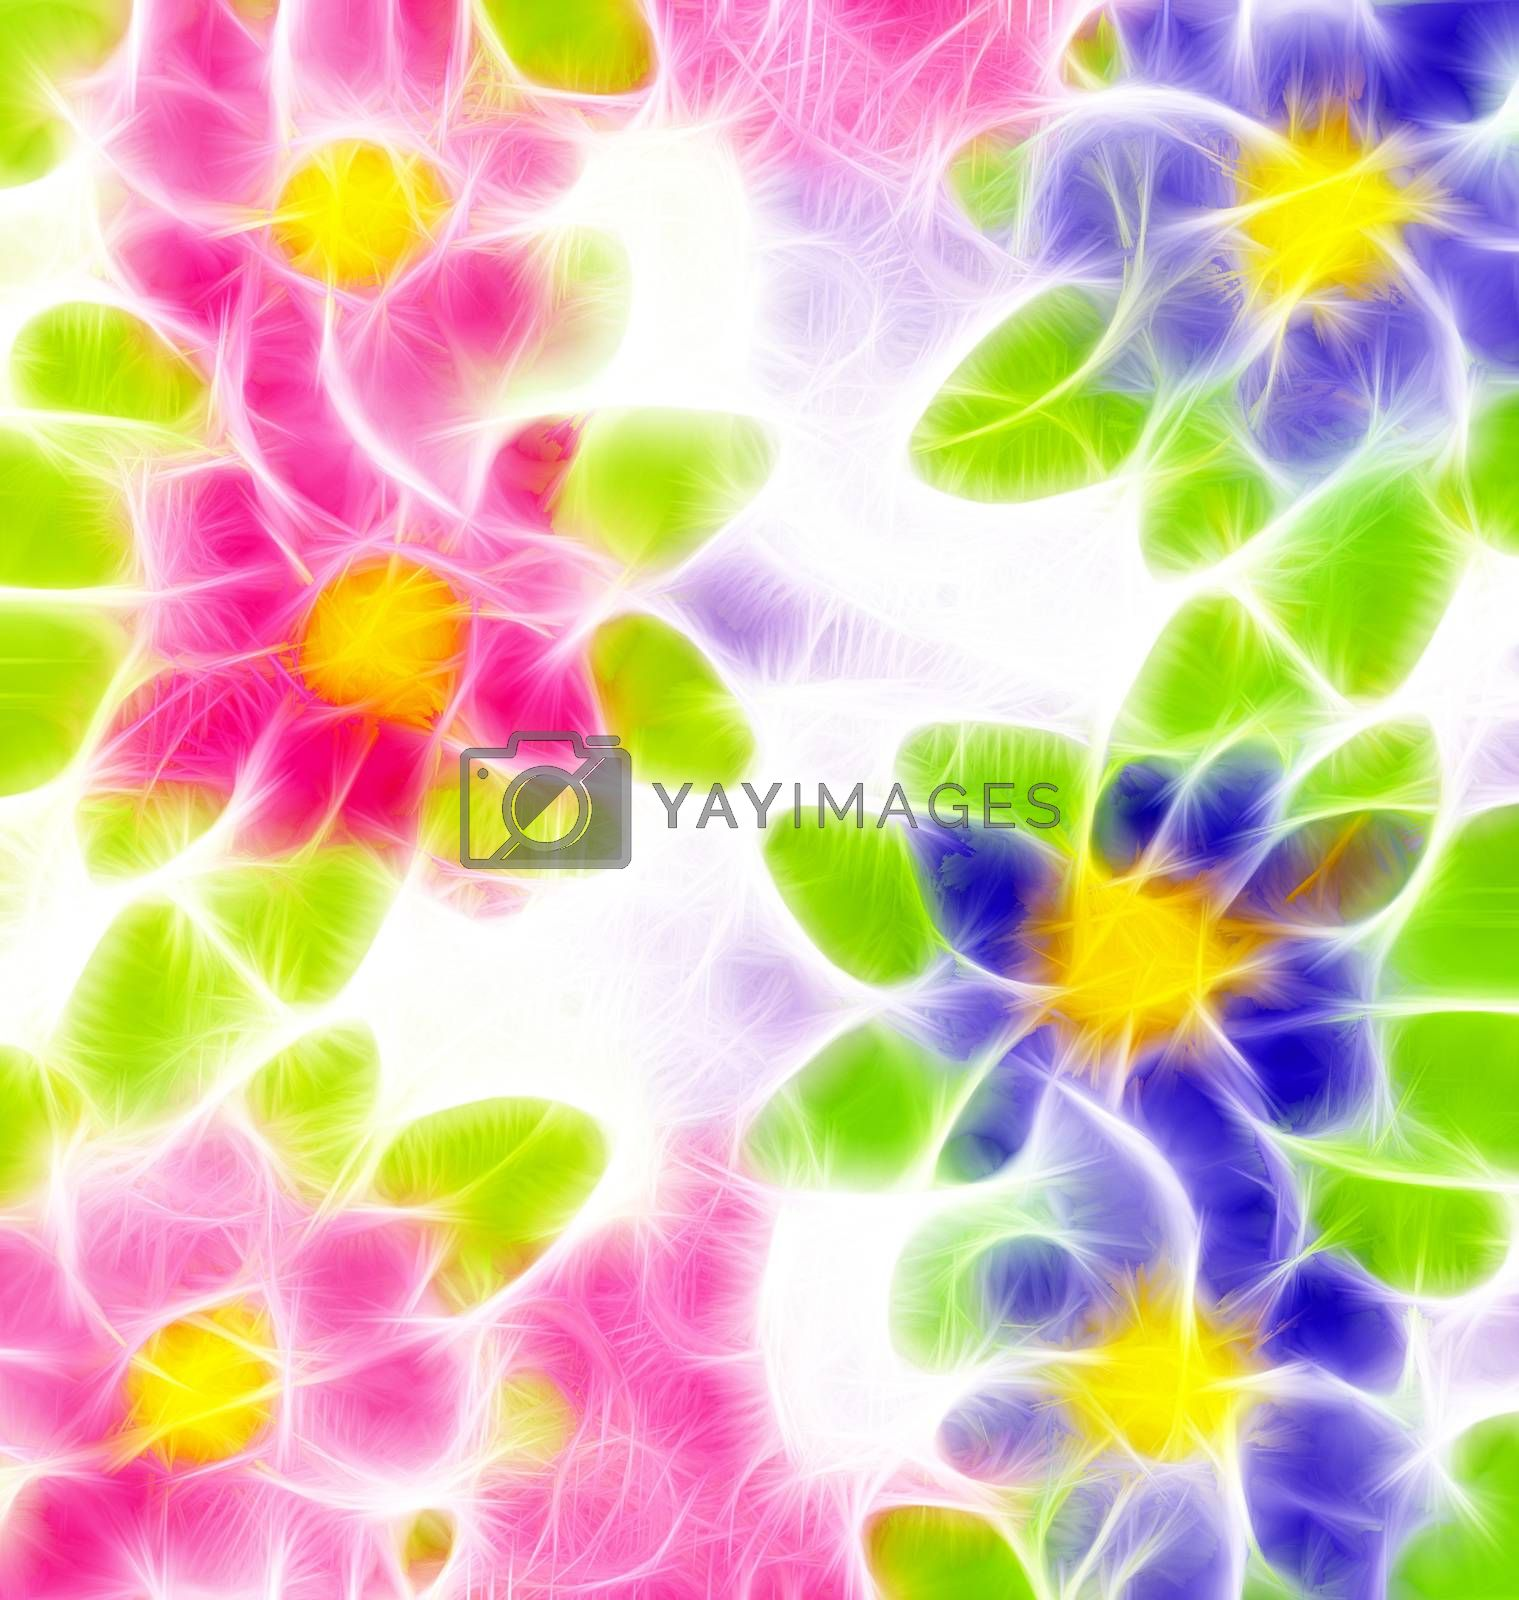 Royalty free image of pink and blue flowers illustrations by CherJu